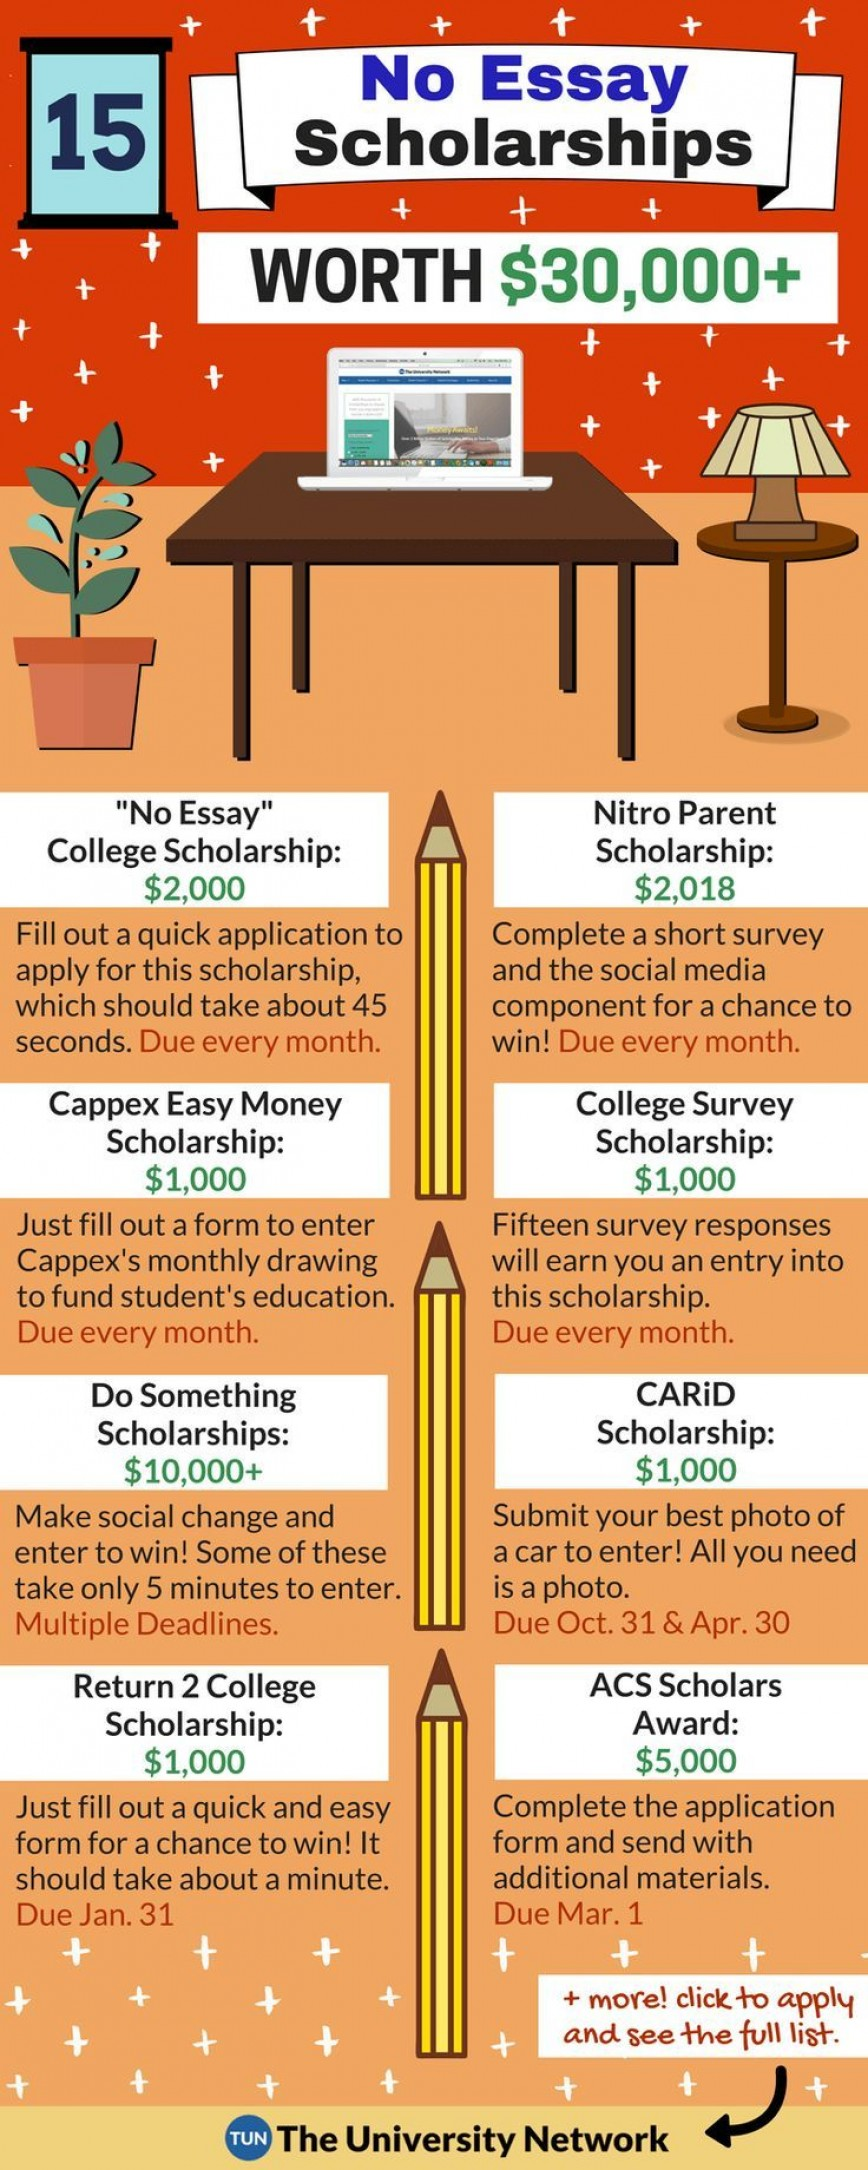 017 Essay Example No College Imposing Scholarships Easy For Students 2017 Scholarship Legit